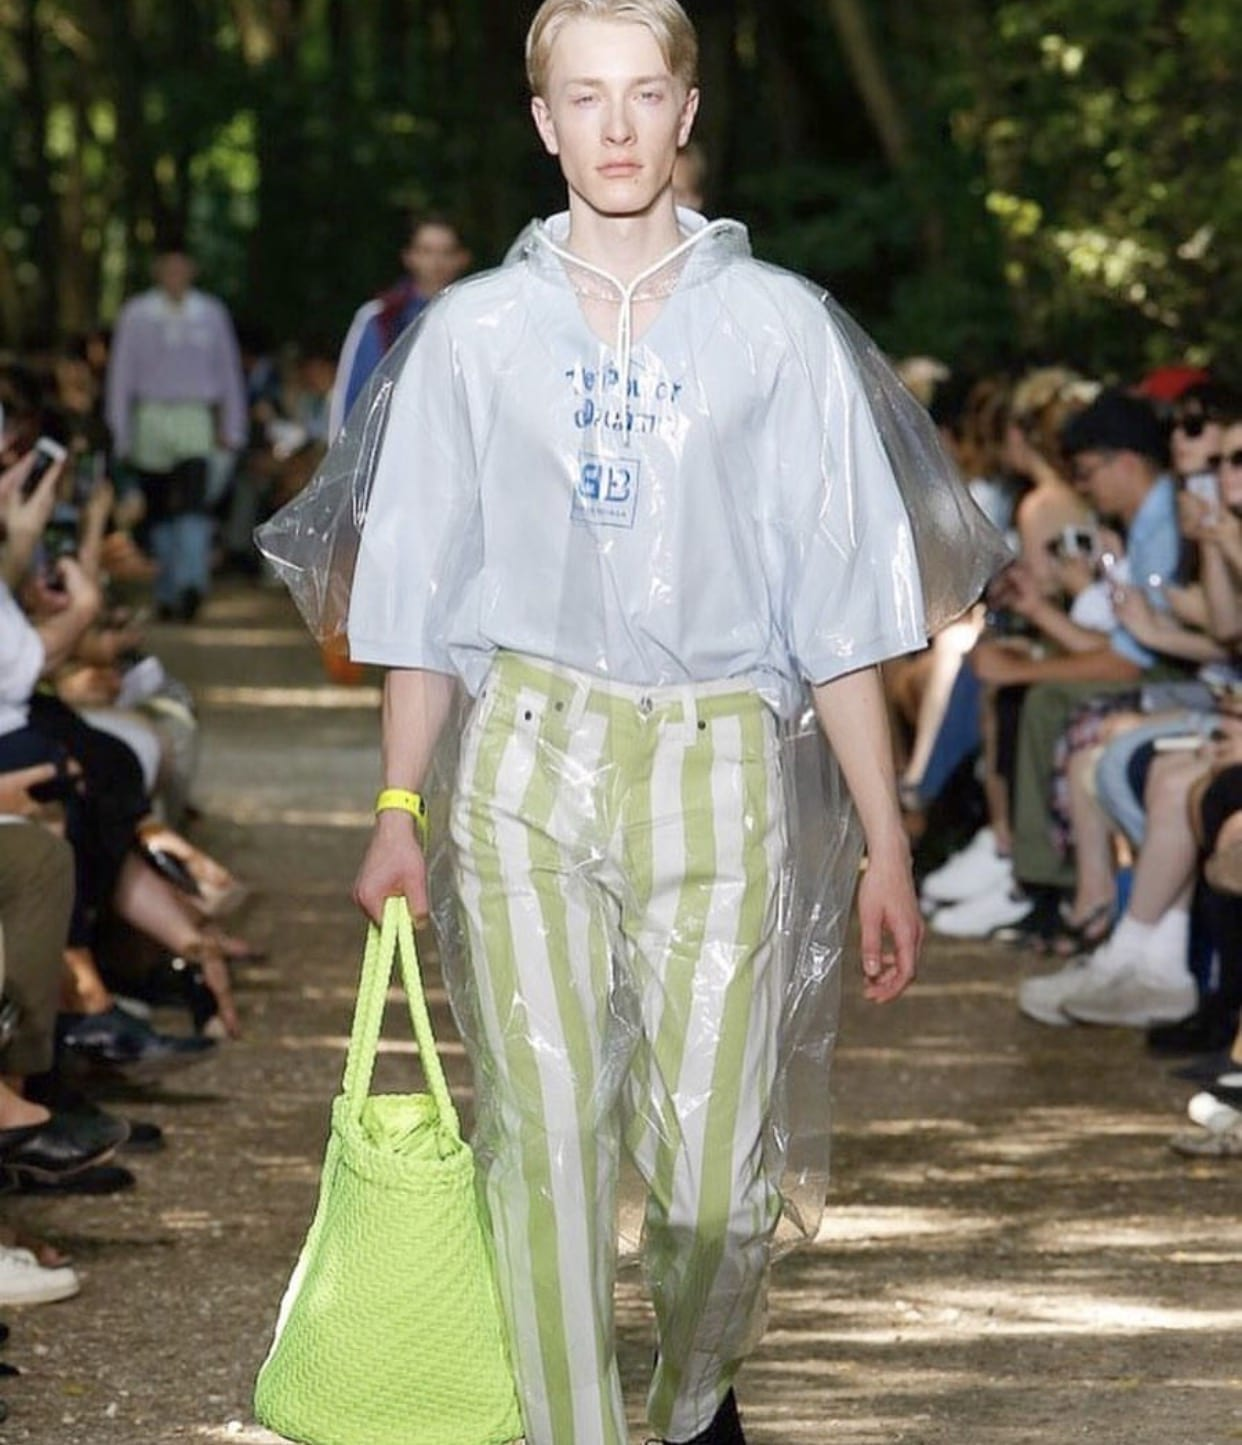 balenciaga ss 2018, pfw ss 2018, theladycracy.it, sfilata balenciaga ss 2018, cosa vogliono le donne, moda ss 2018, elisa bellino, fashion blog 2017, fashion blogger milano 2017, blogger moda più seguite 2017, blogger moda 2017, blog moda 2017, fashion blogger italiane 2017